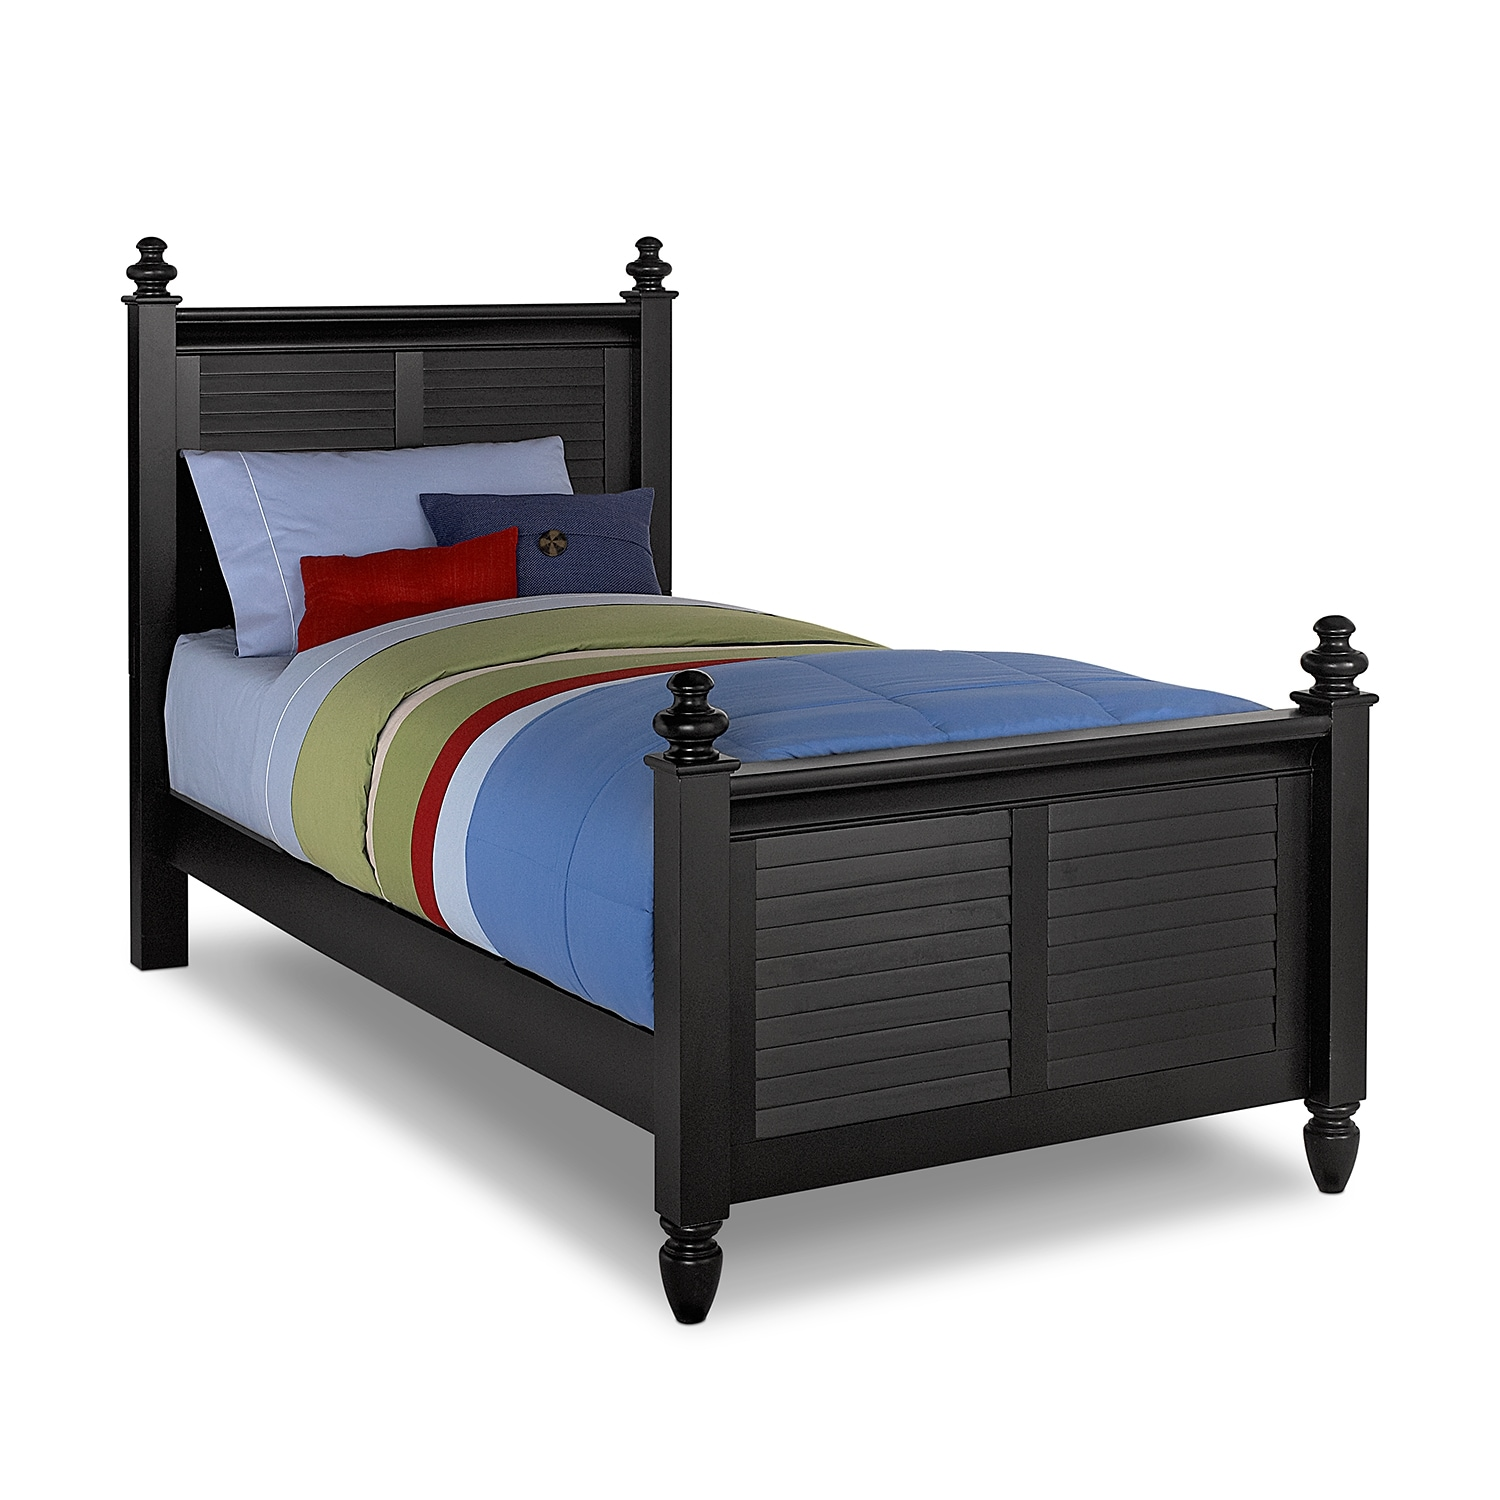 Seaside Twin Bed